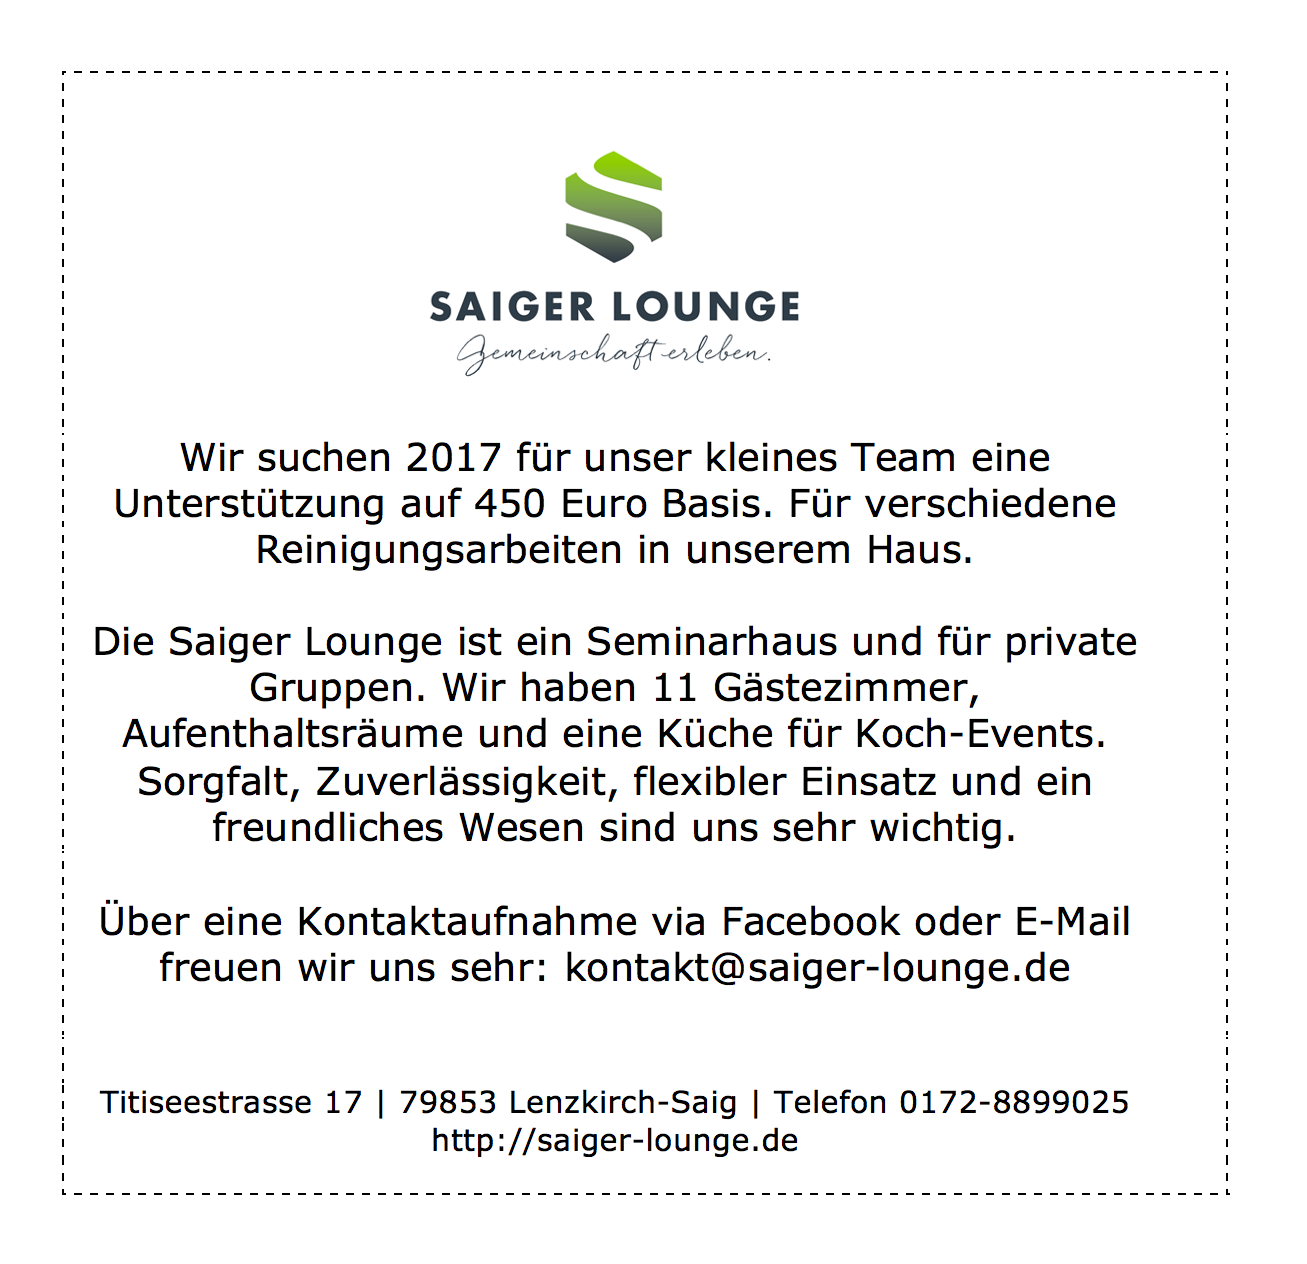 saiger lounge job